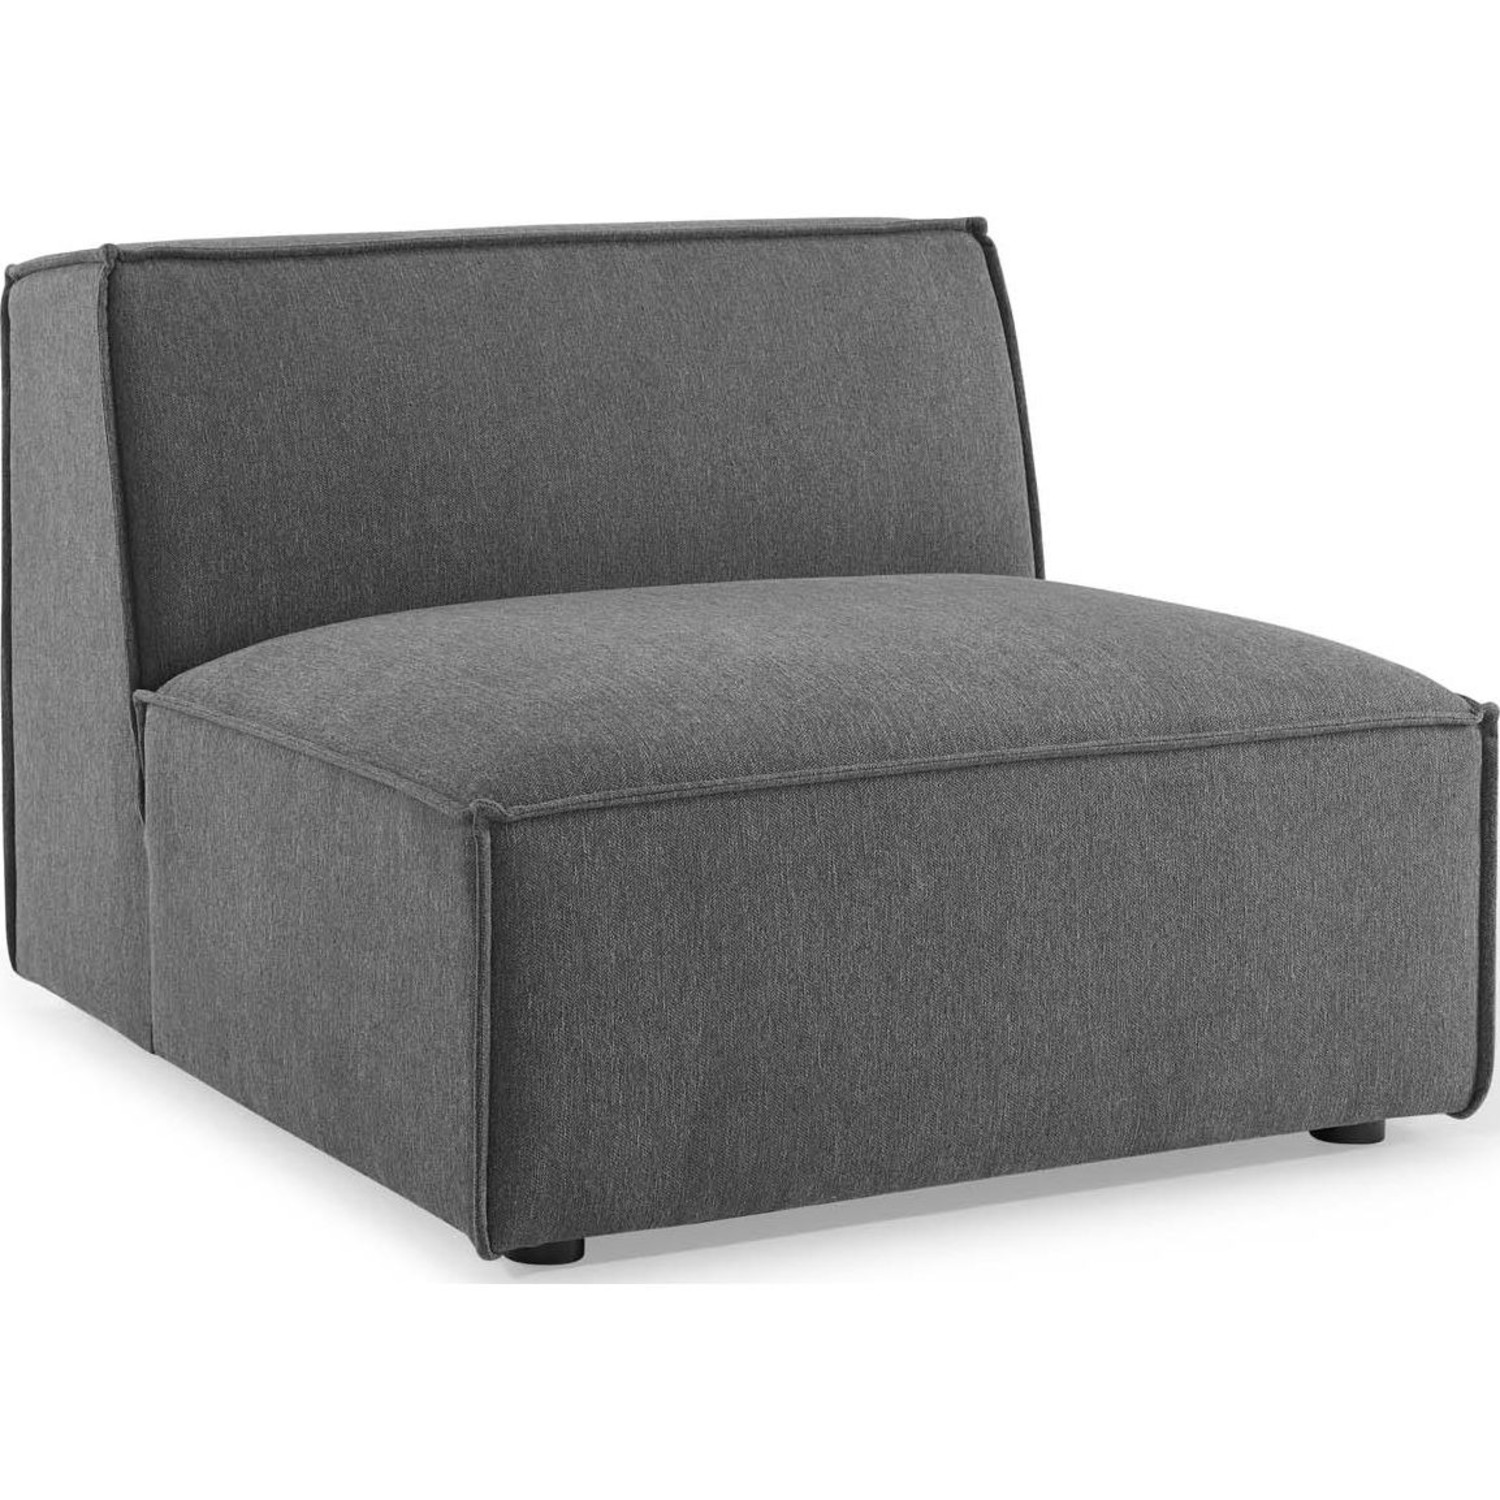 5-Piece Sectional Sofa In Charcoal Fabric - image-6